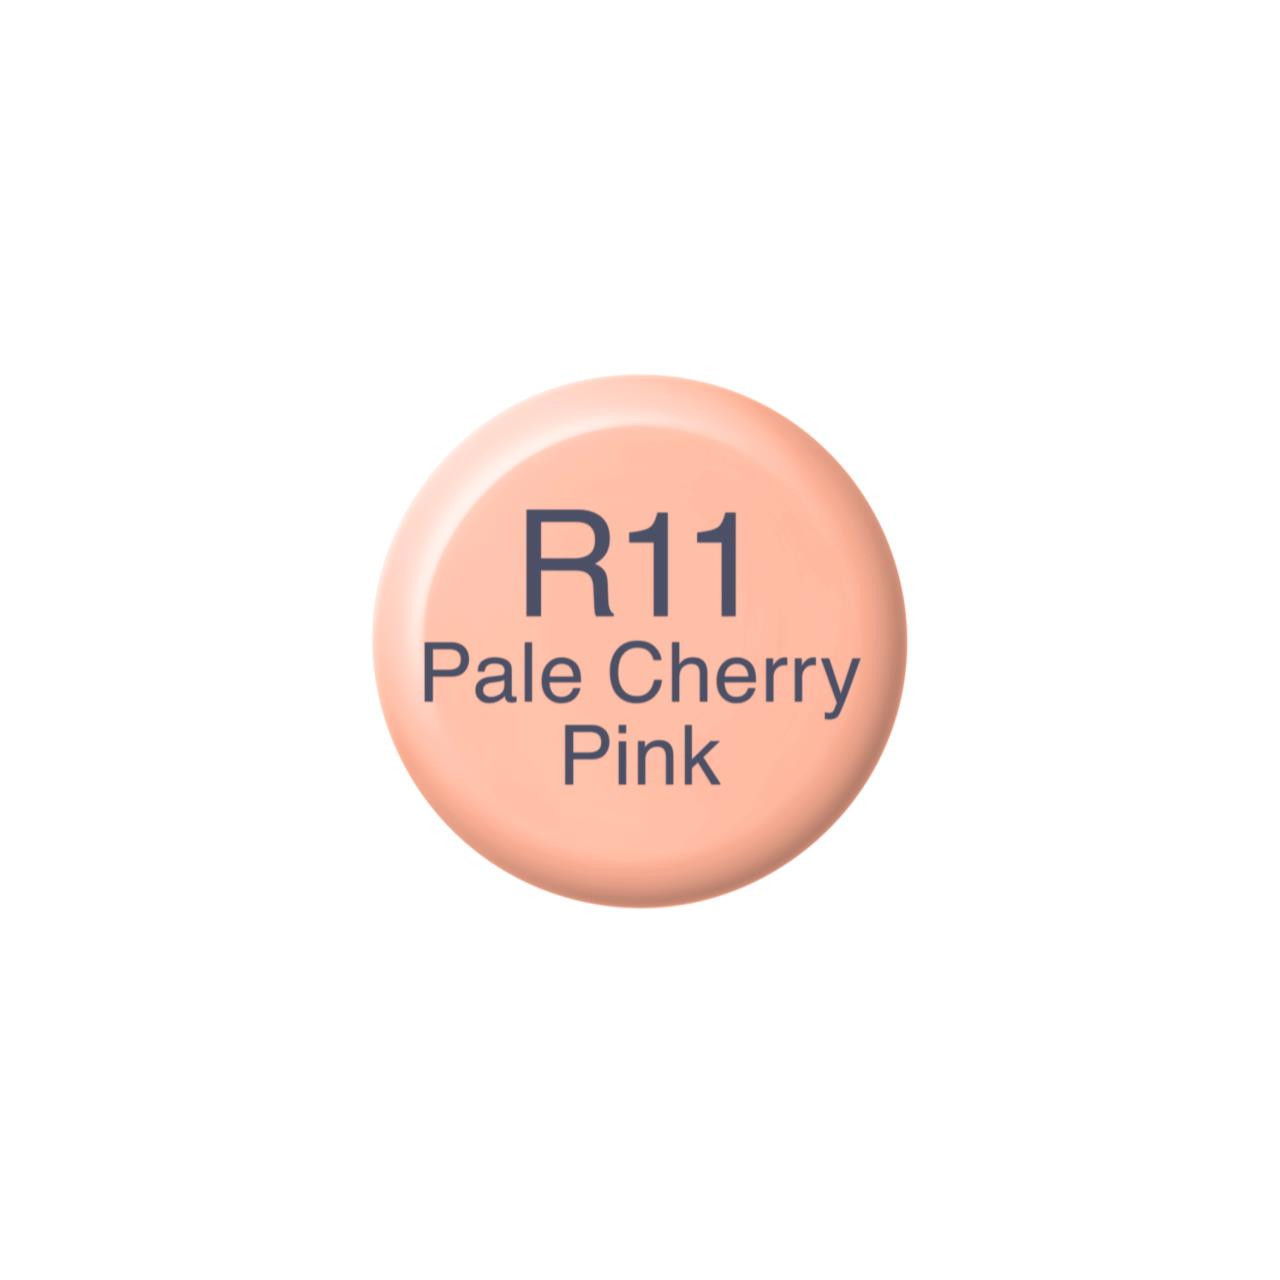 R11 Pale Cherry Pink, Copic Ink - 4511338057438